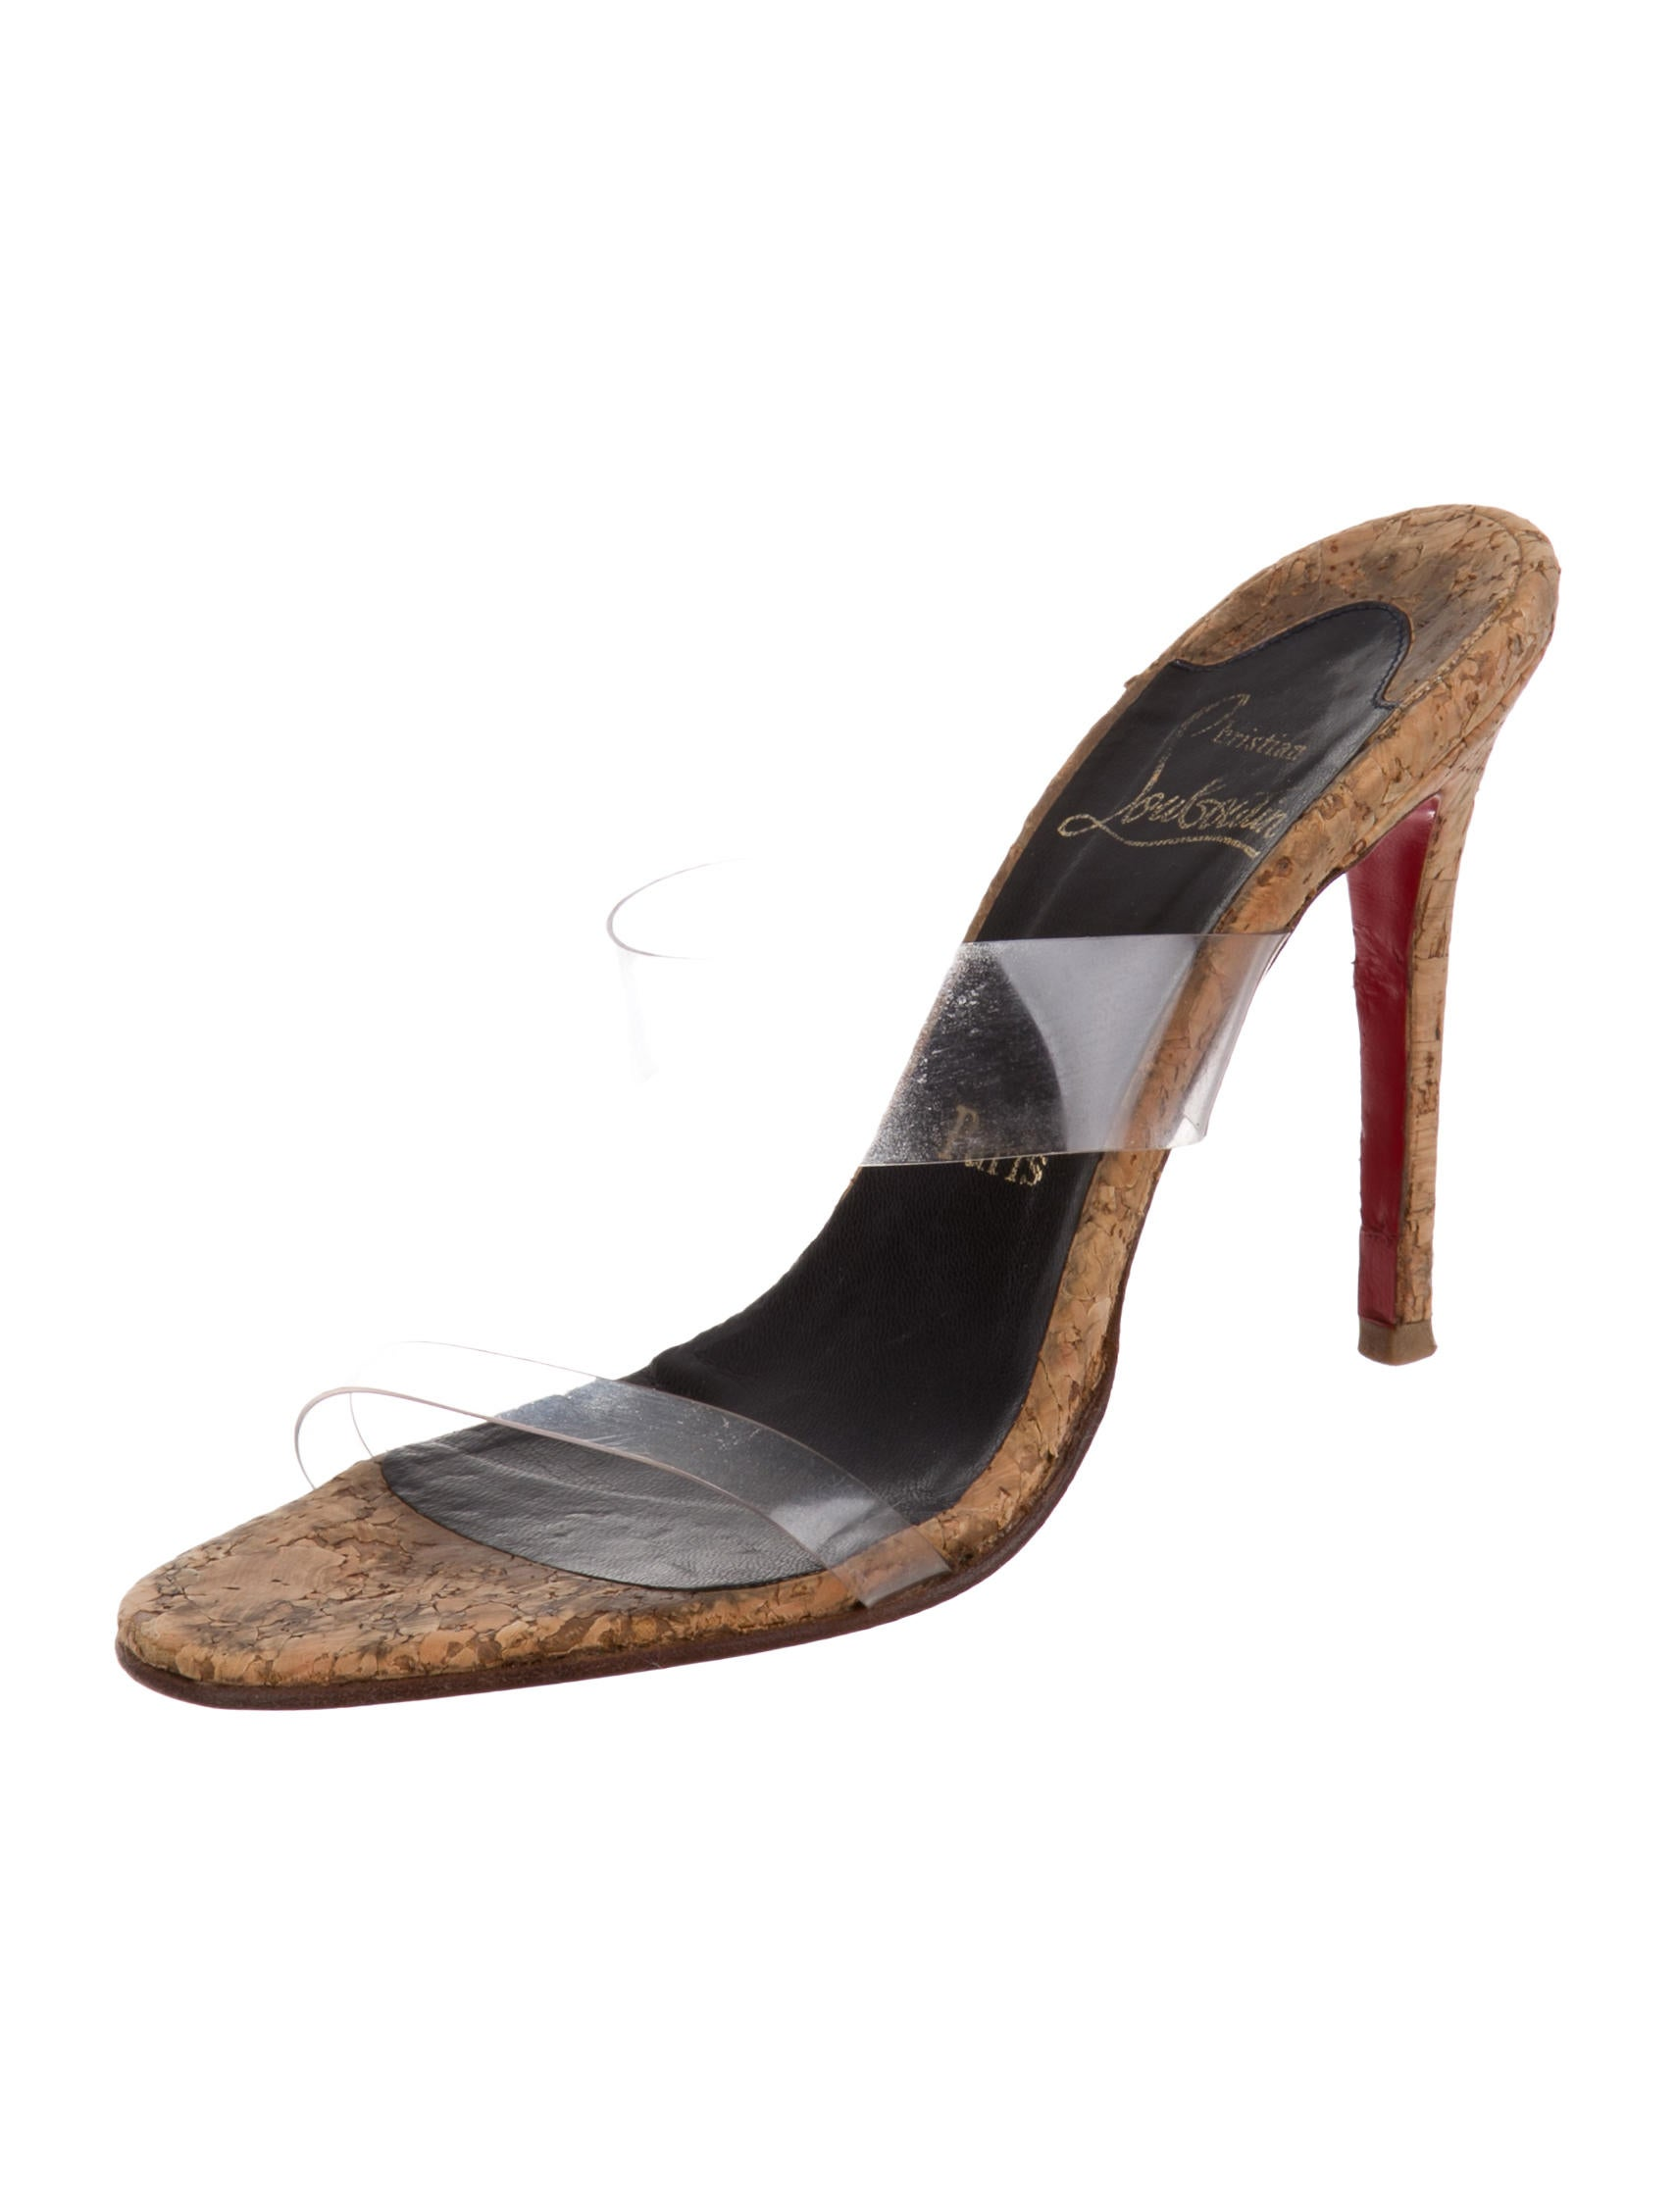 mens louboutin - Christian Louboutin PVC Slide Sandals - Shoes - CHT44936 | The ...